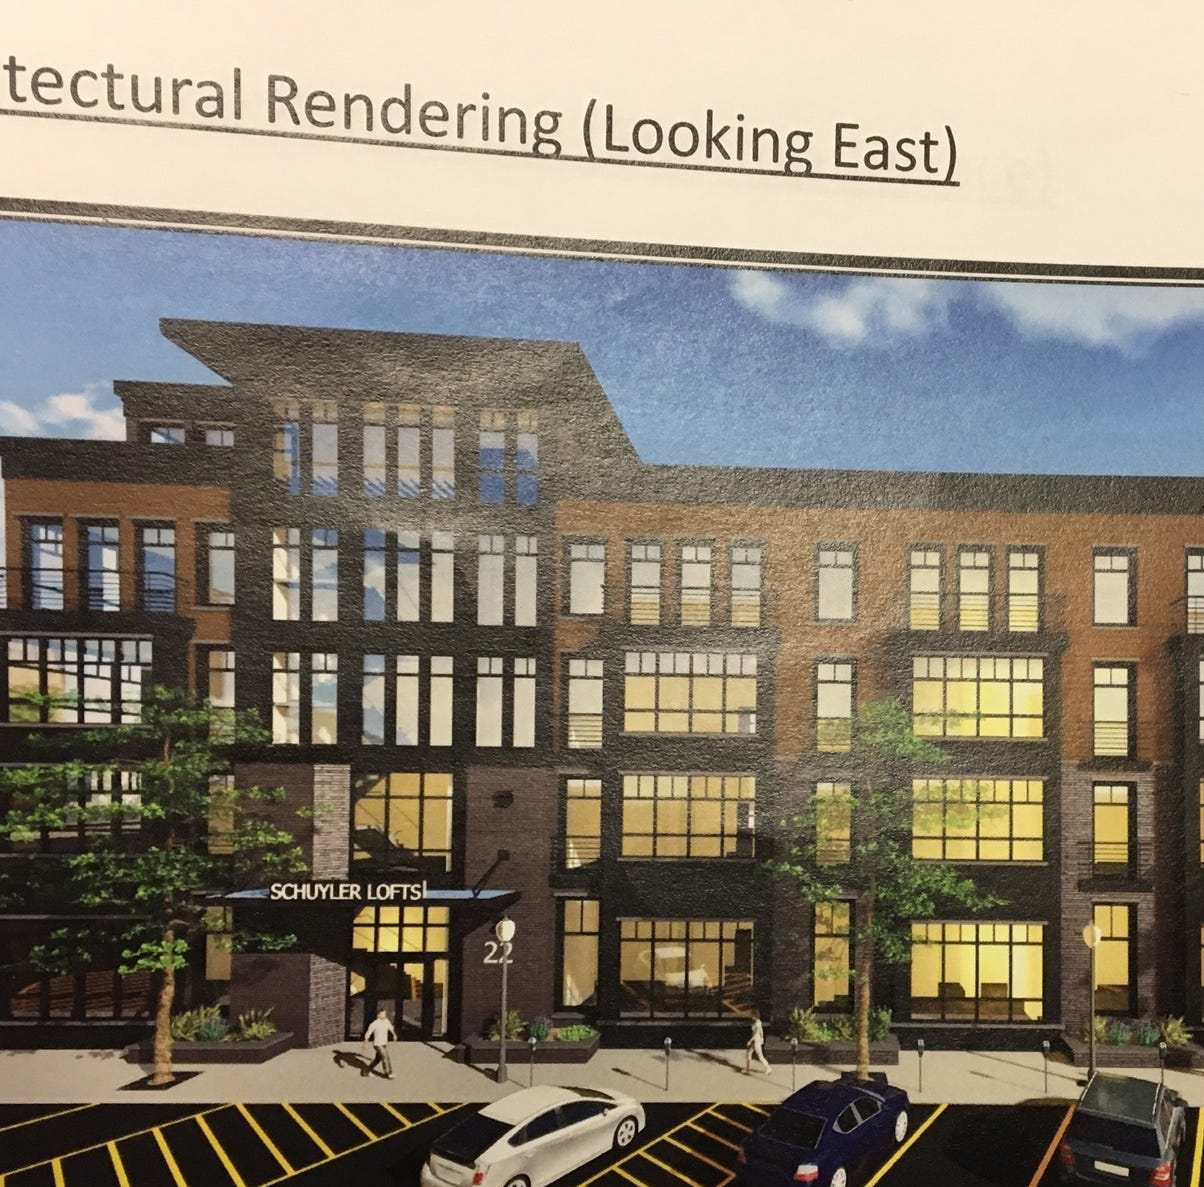 Loft-style apartments proposed for outdated Morristown buildings